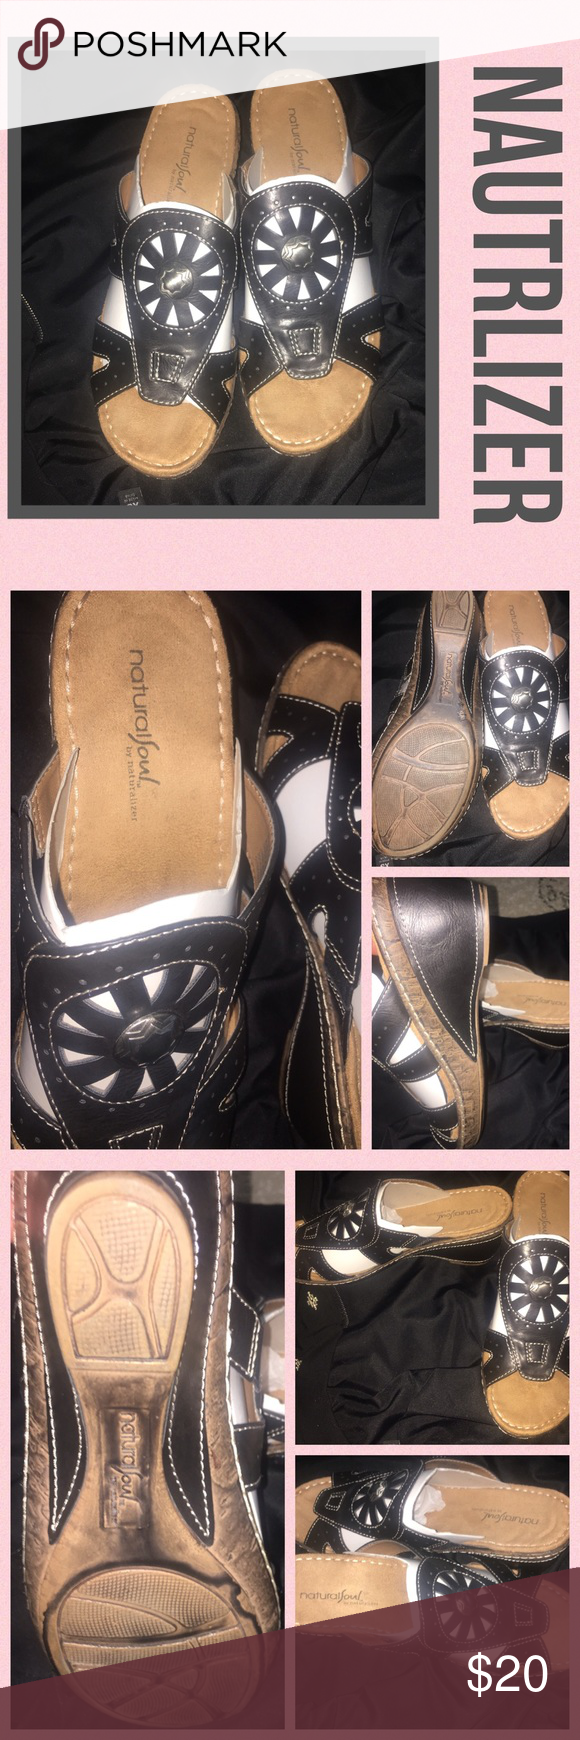 Nautralsoul by Nautrlizer brown wedges sz 10 Cute authentic size 10 as seen nautrlizer Shoes Mules & Clogs